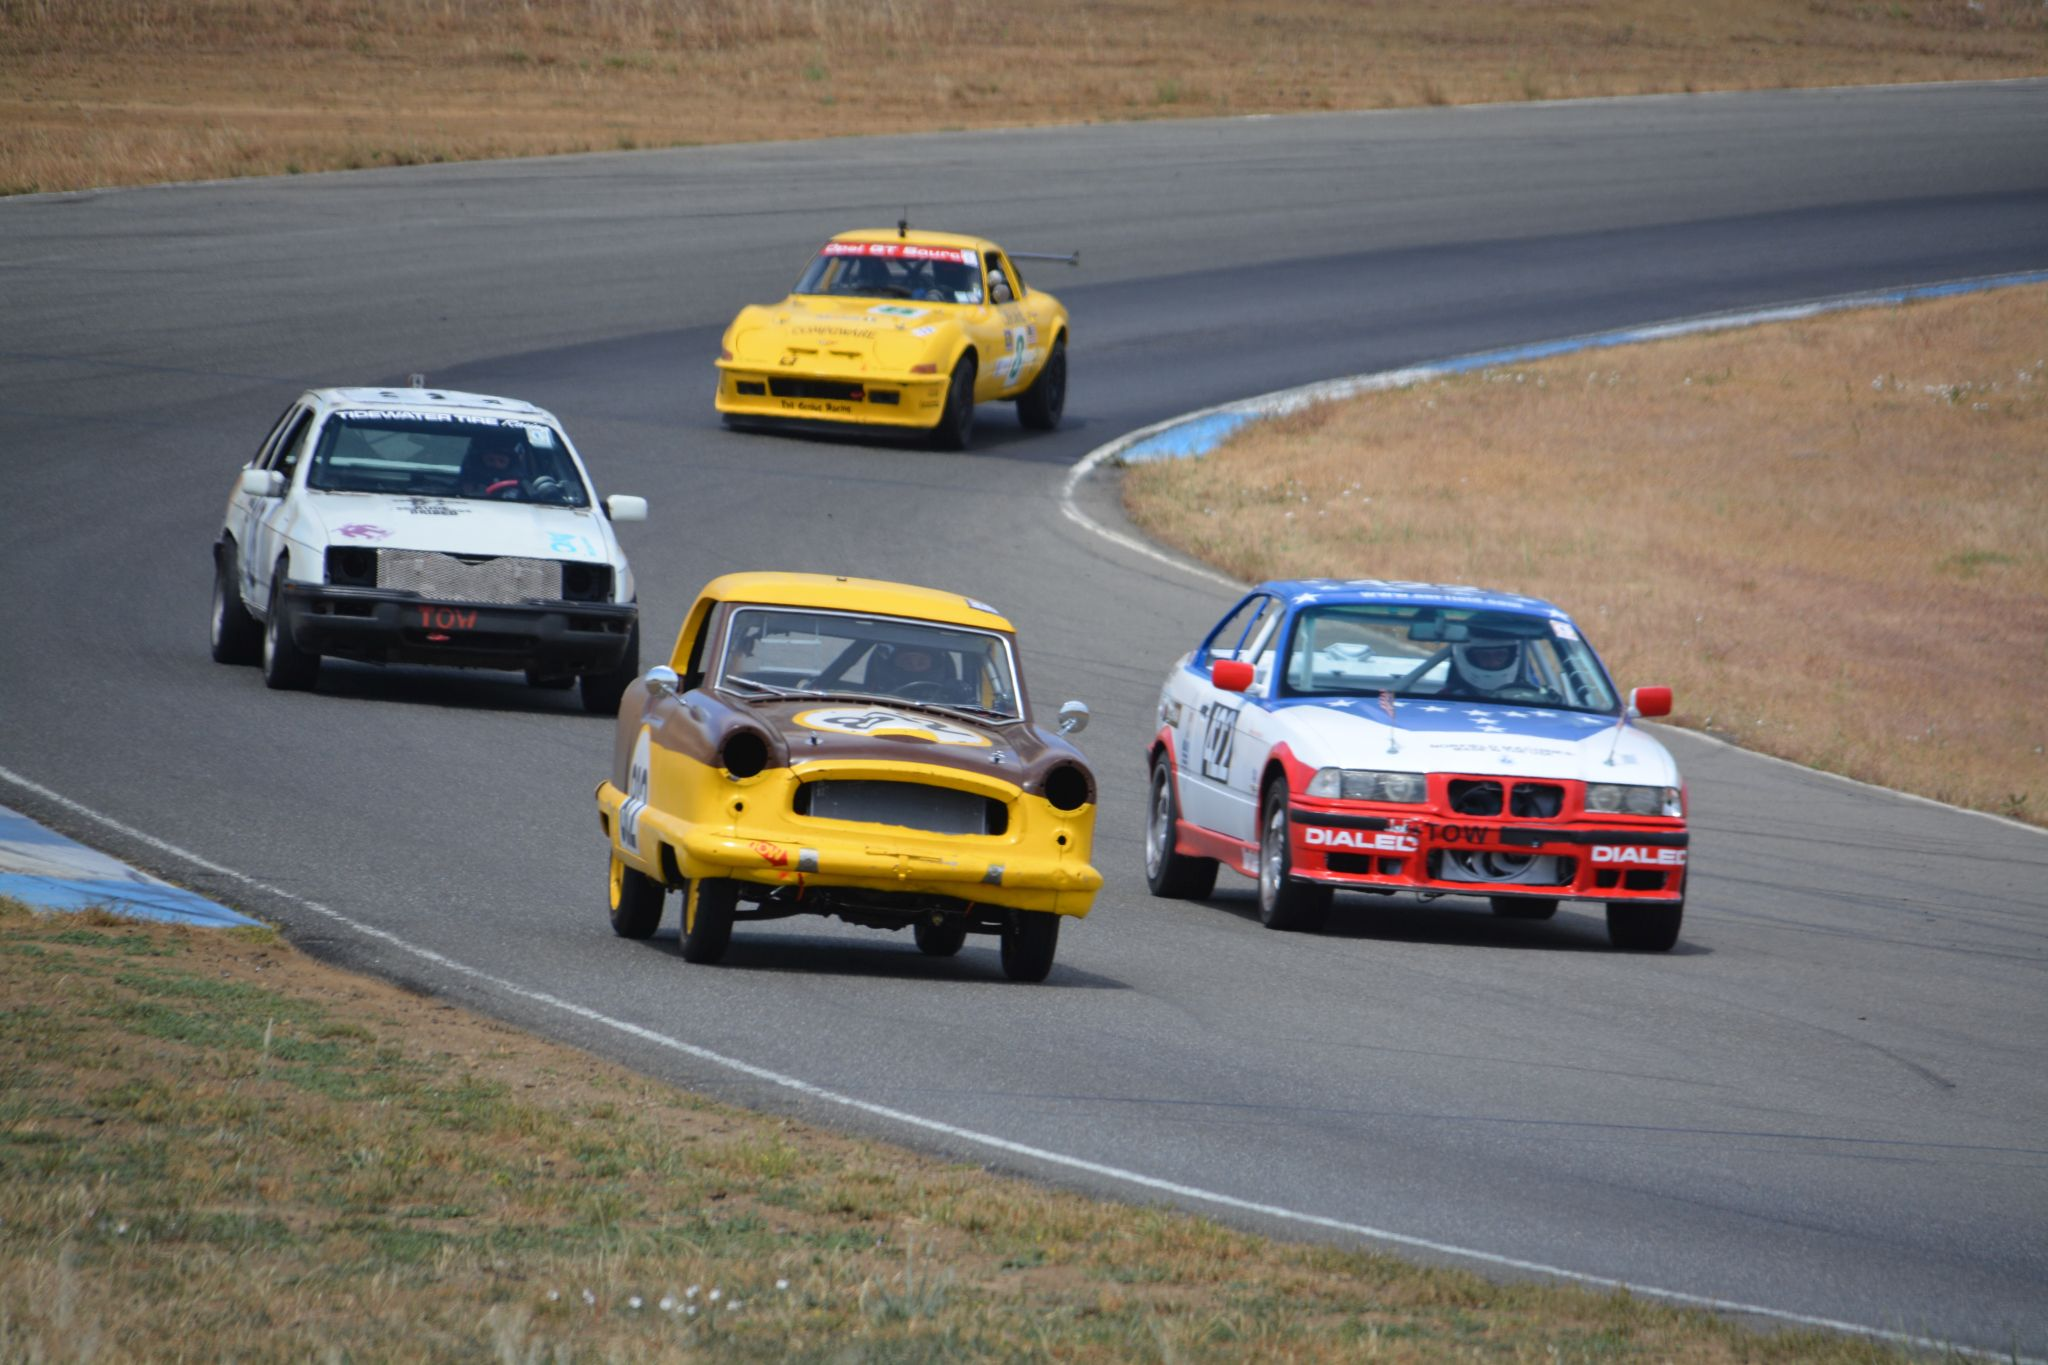 24 Hours of Lemons track time